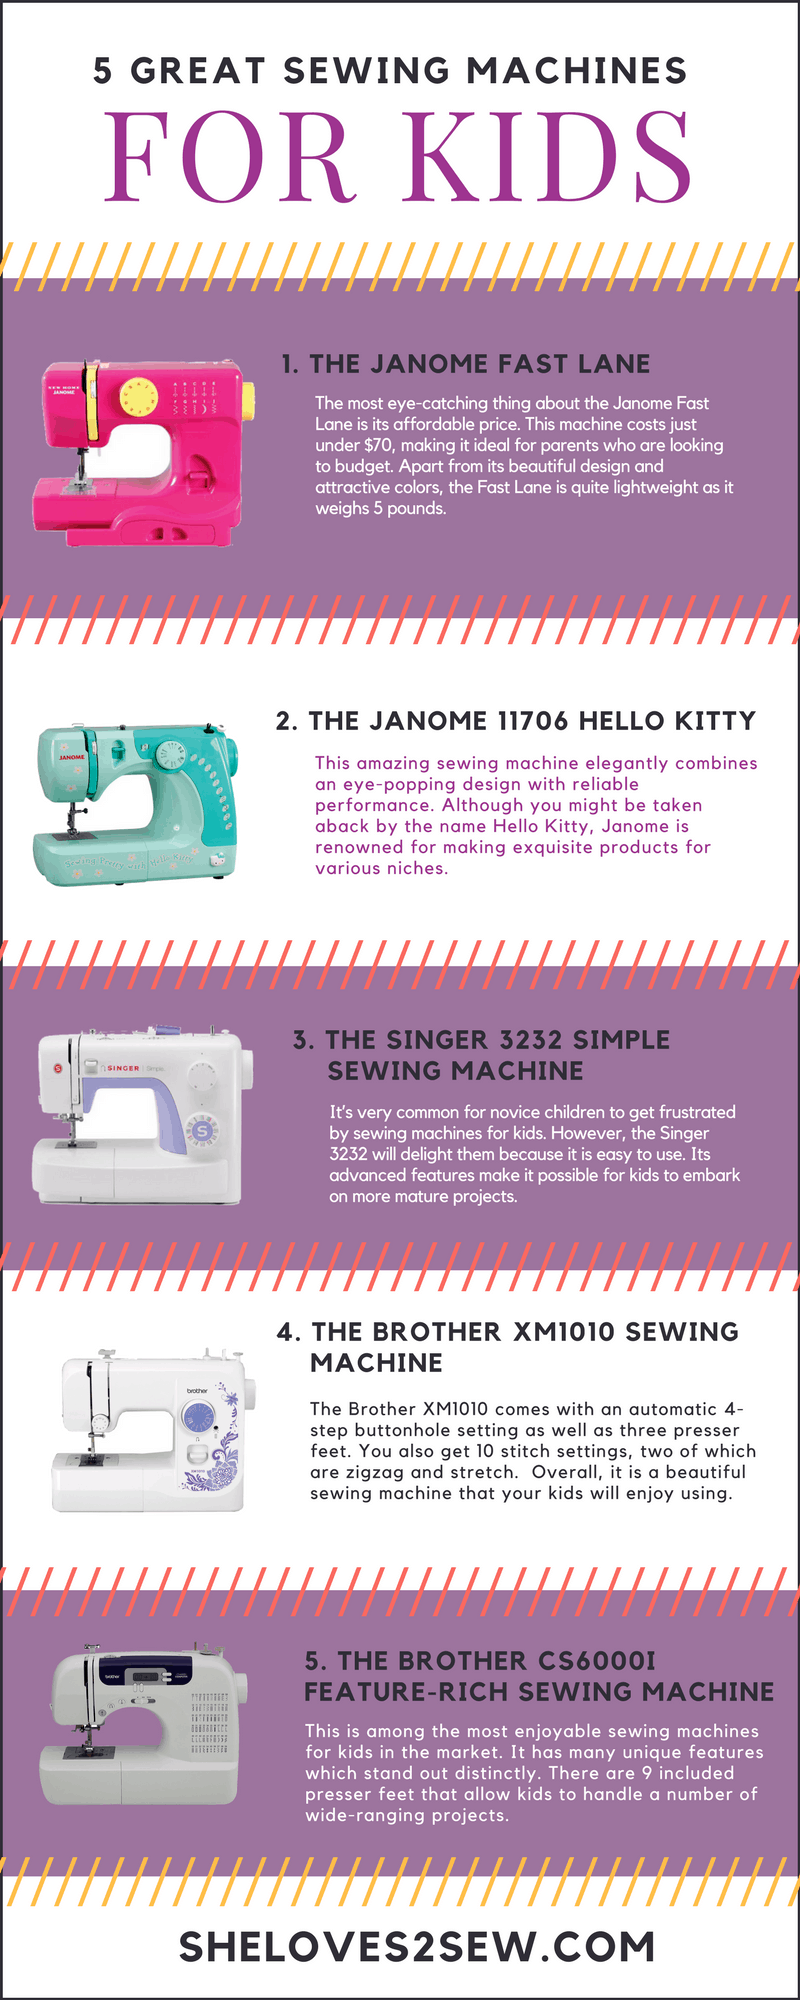 5 Sewing Machines for Kids (1)